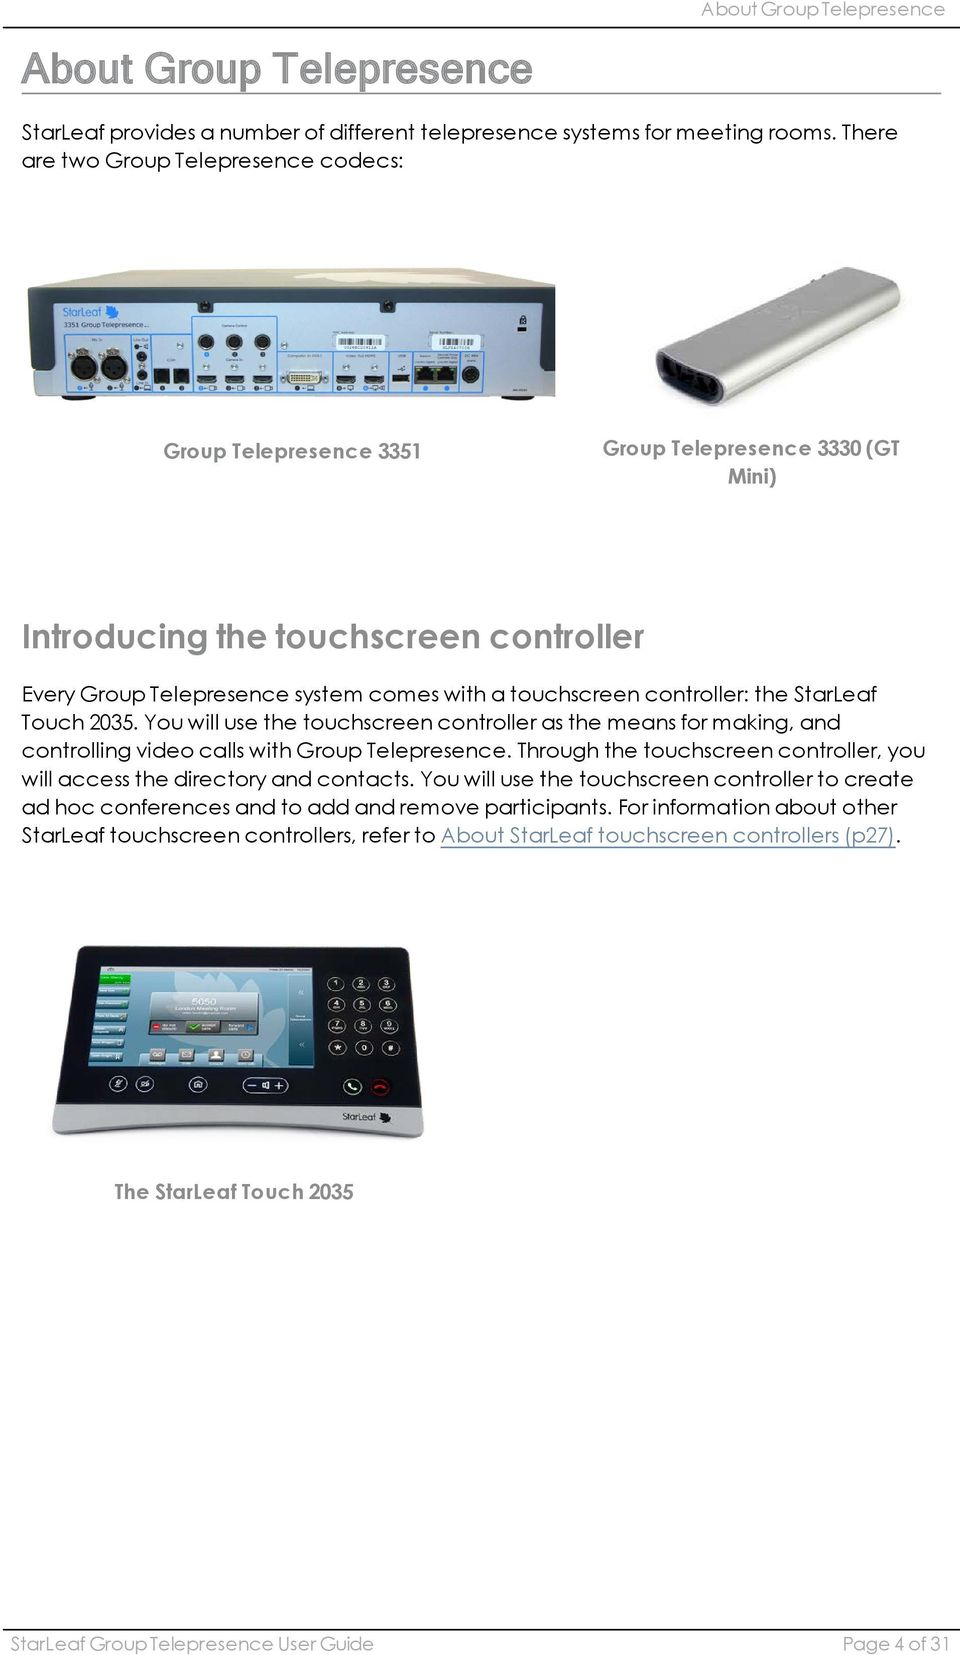 controller: the StarLeaf Touch 2035. You will use the touchscreen controller as the means for making, and controlling video calls with Group Telepresence.